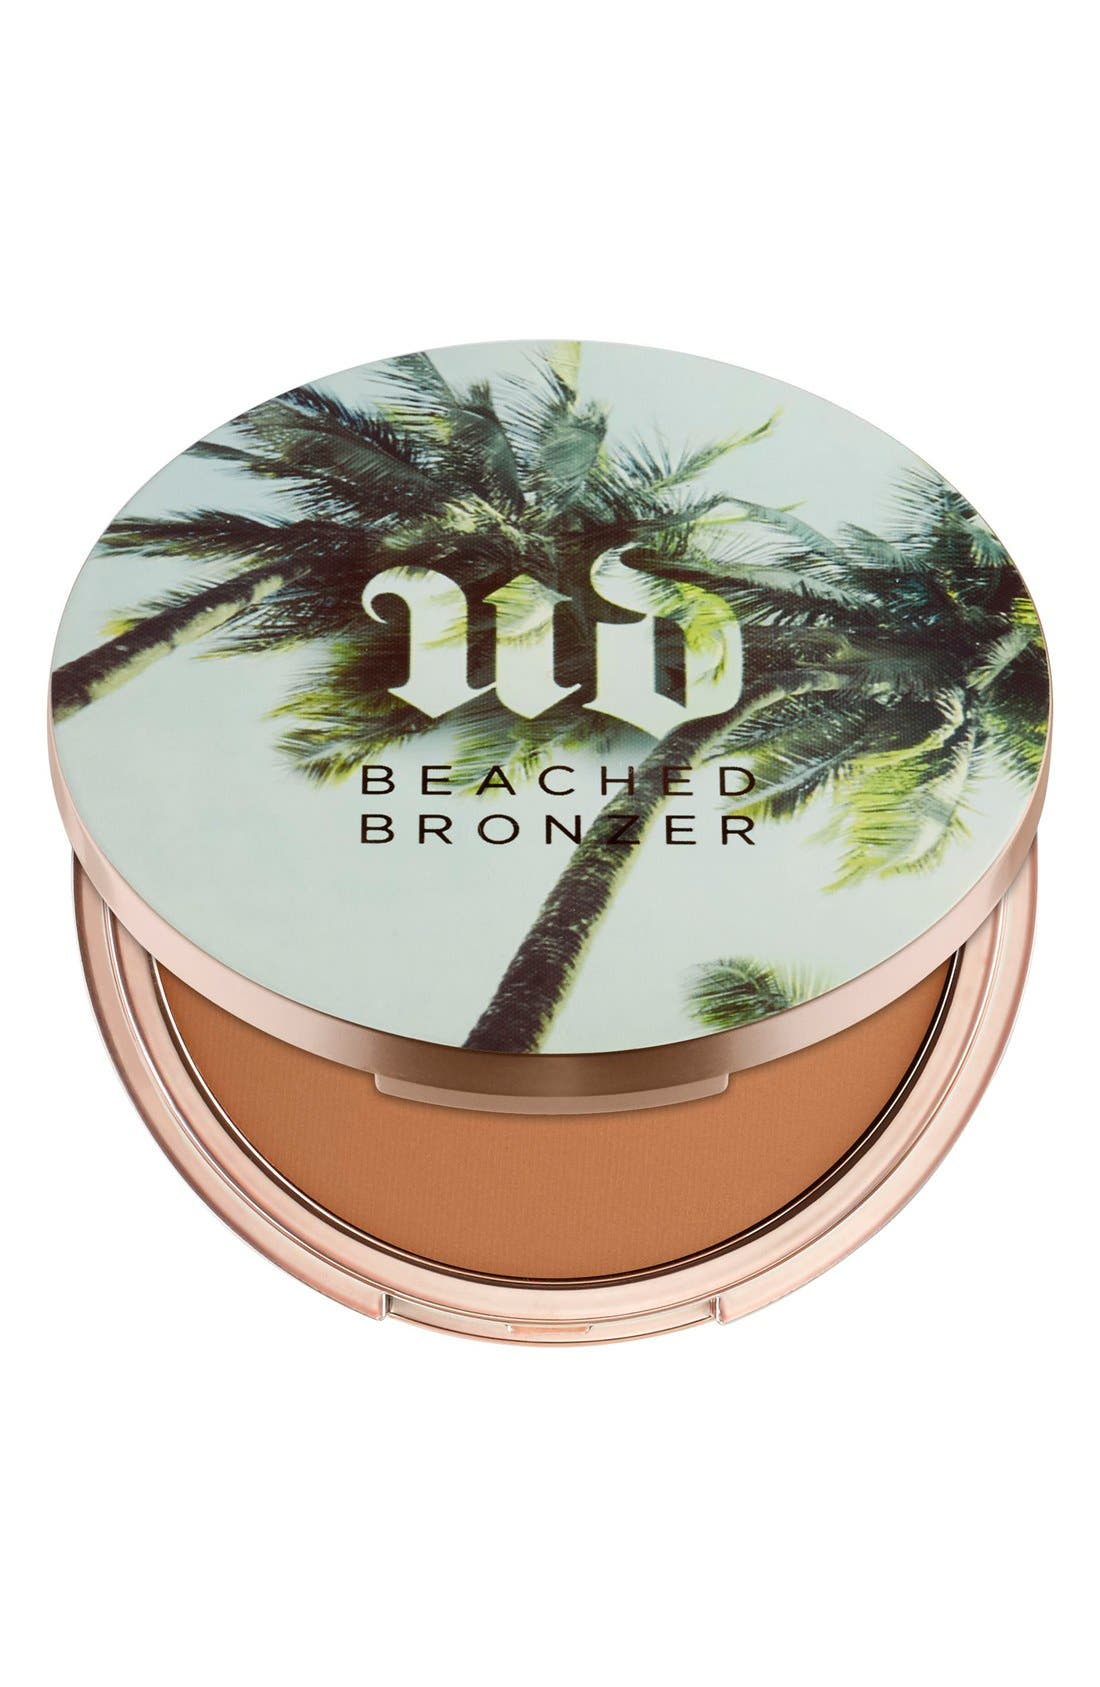 Beached Bronzer,                             Main thumbnail 1, color,                             BRONZED